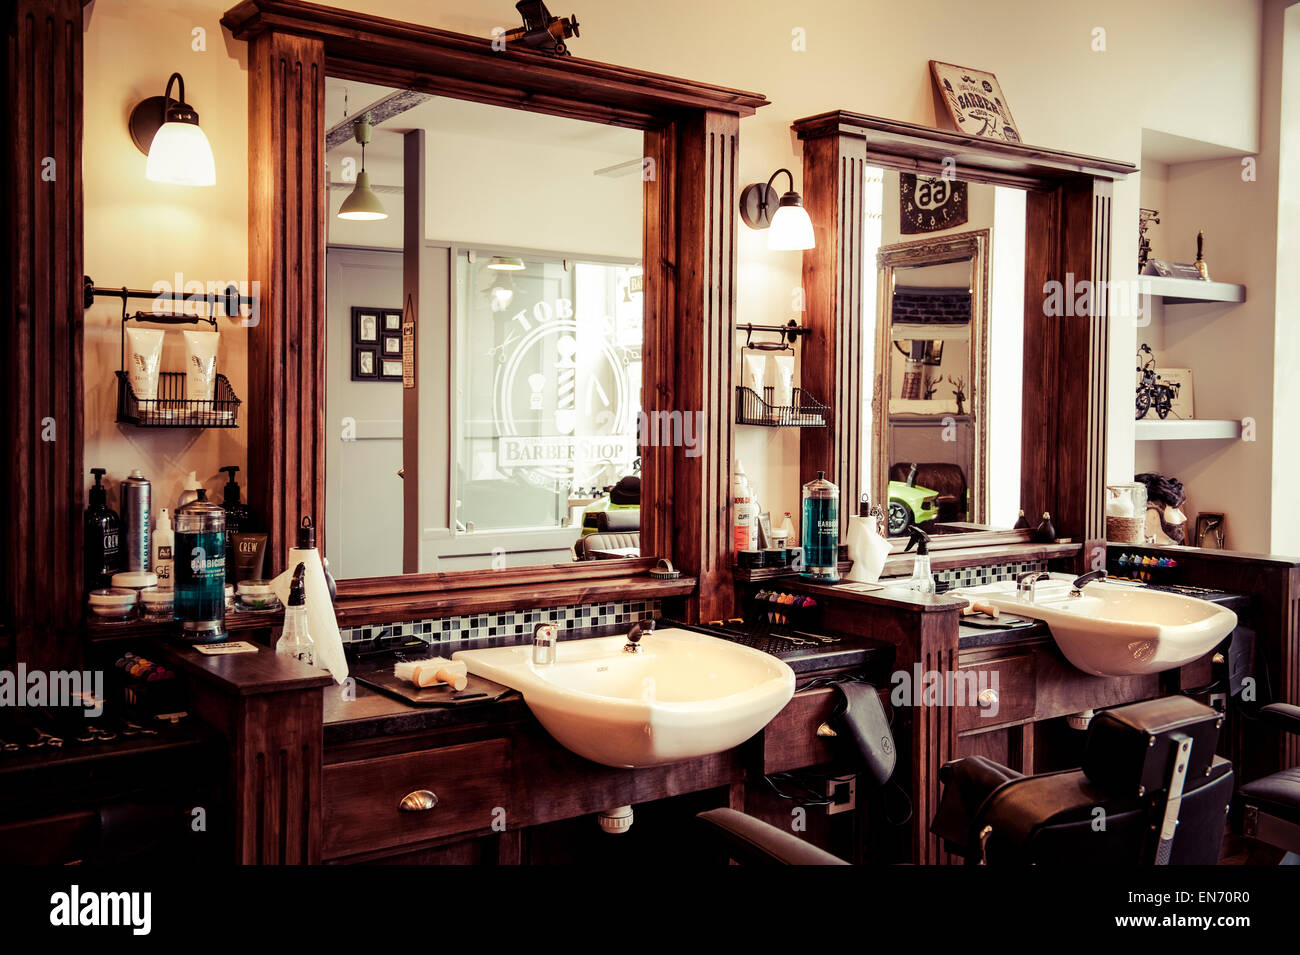 Men 39 s barber shop retro styled interior design stock photo royalty free image 81903556 alamy - Barber shop interior ...